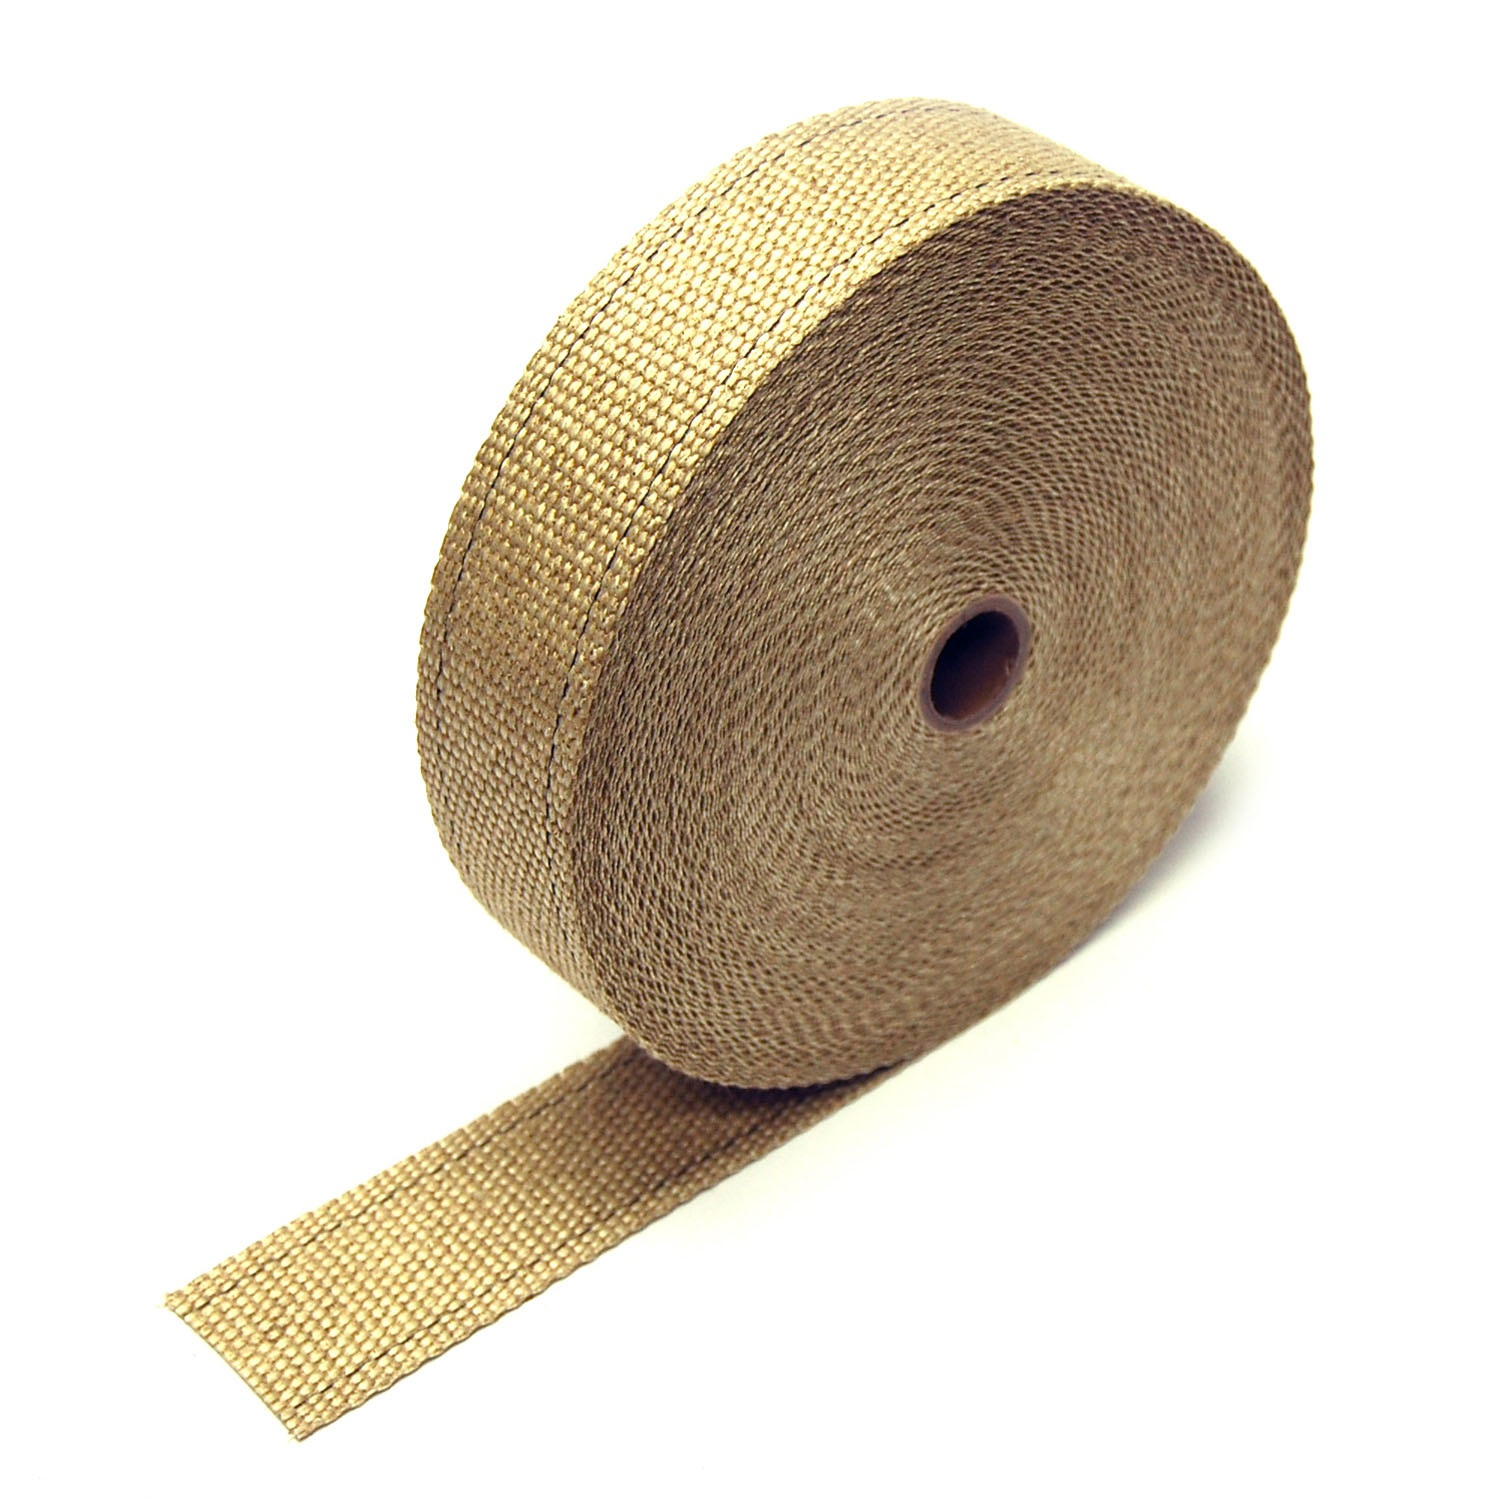 DEI Exhaust Wrap 2in x 100ft - Tan